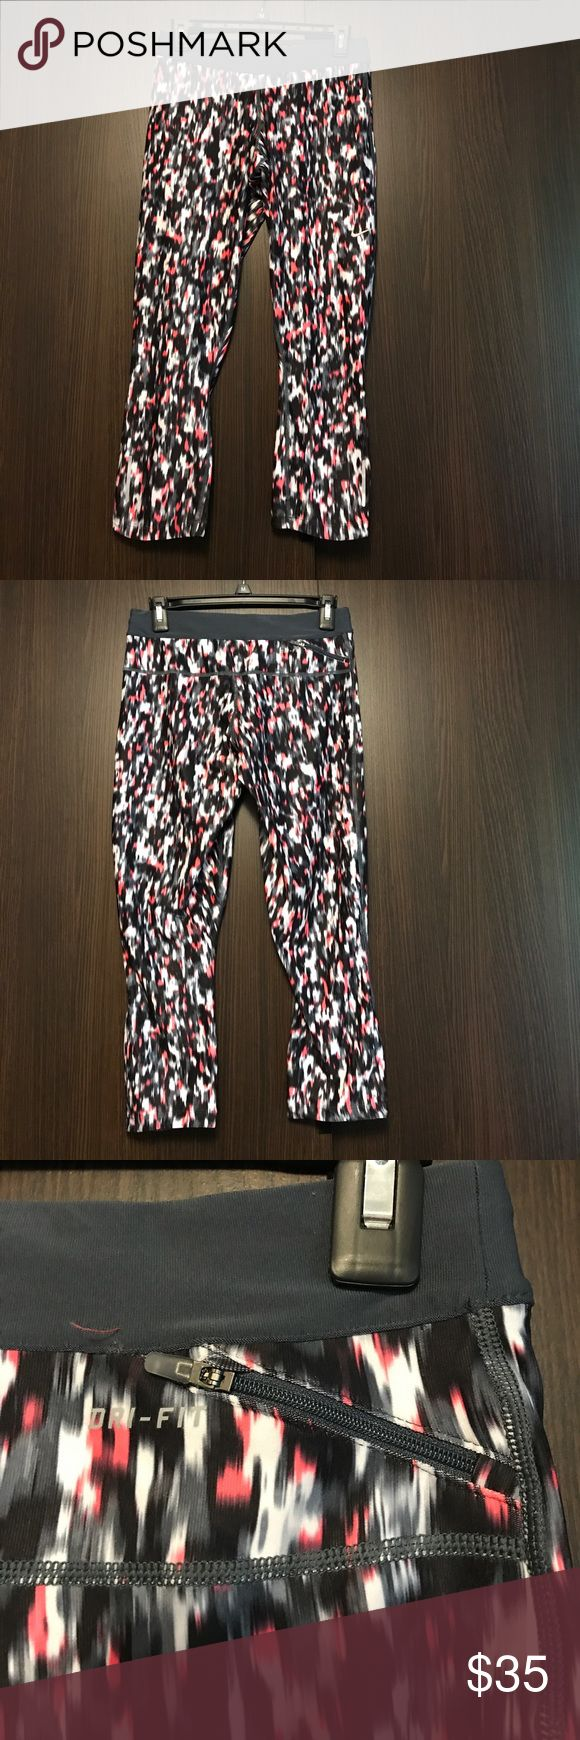 """Nike Capri Multicolored Nike Capri. Never worn. No flaws. Draw strong, """"just do it"""" on backside of band. Small zipper pocket in back. No trades. Nike Pants Capris"""